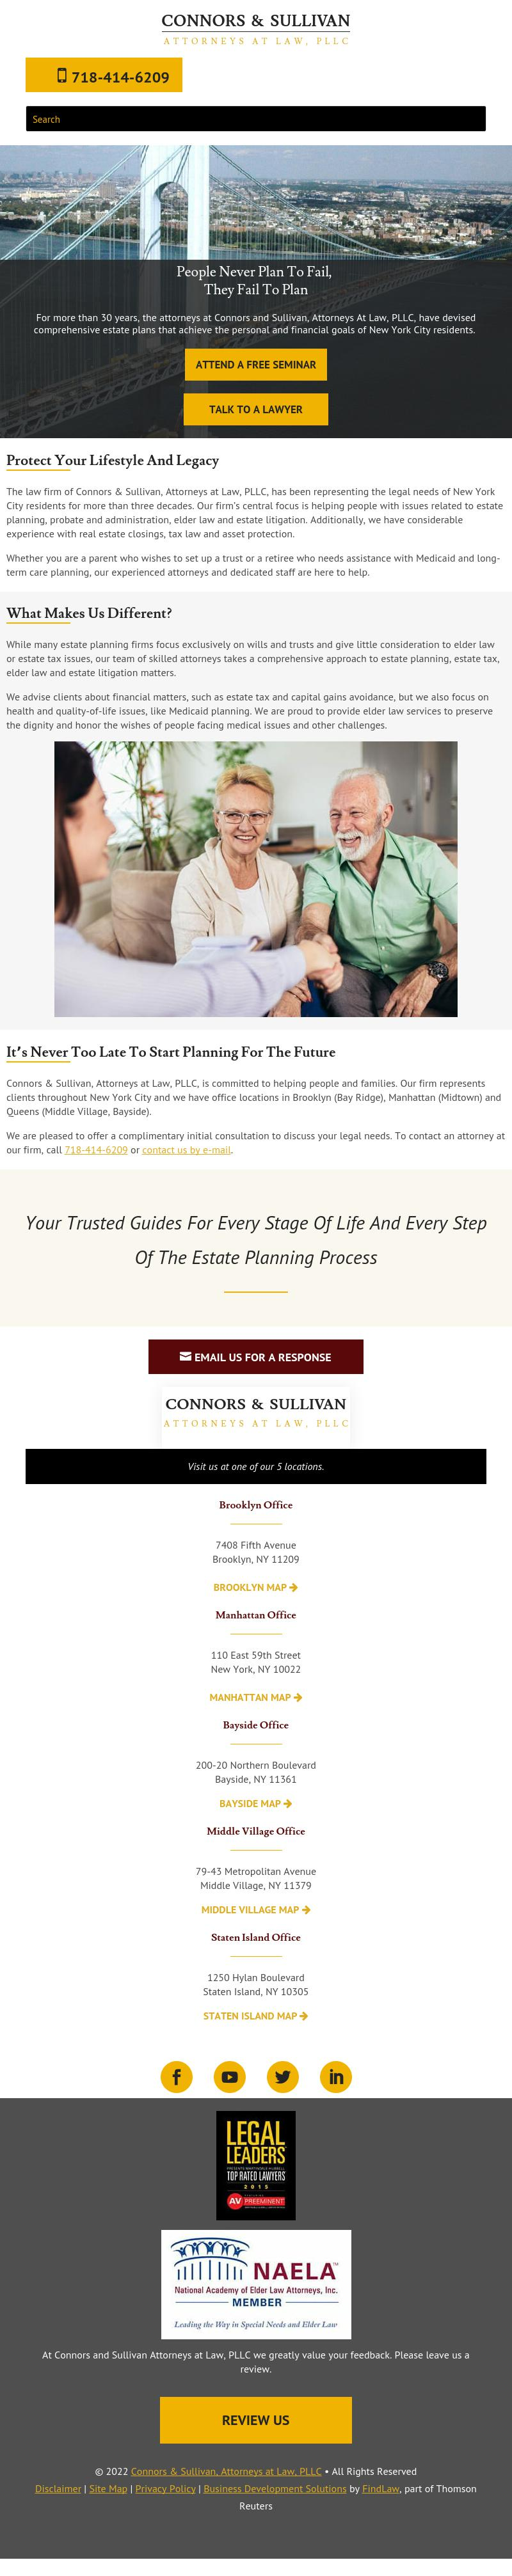 Connors and Sullivan Attorneys at Law, PLLC - New York NY Lawyers